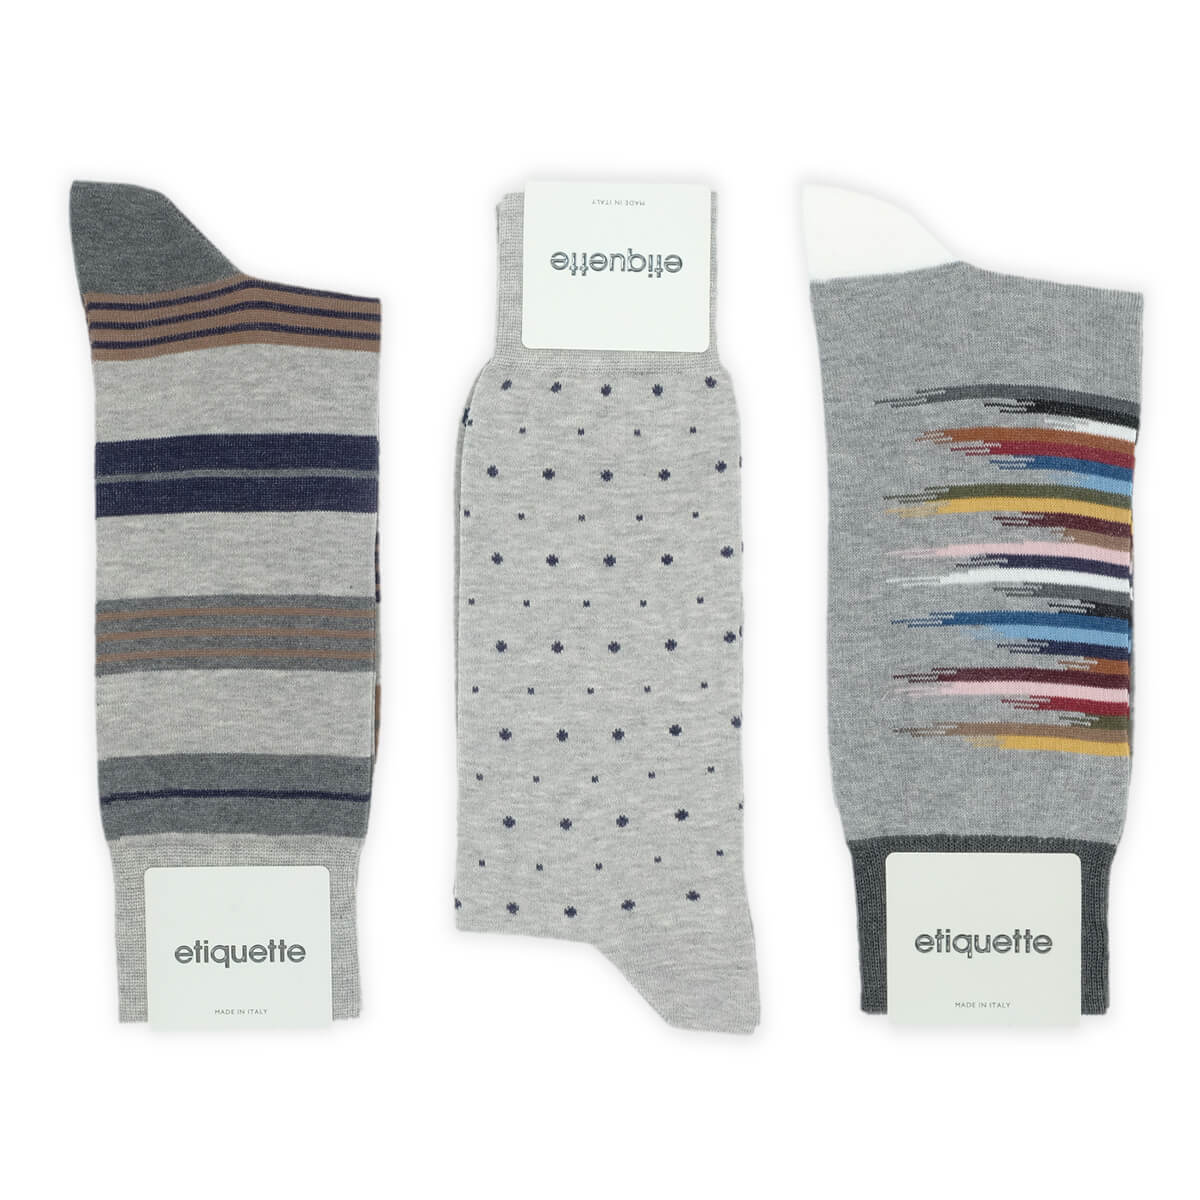 Mens Socks - Shades of Grey Men's Socks Gift Box - Grey⎪Etiquette Clothiers